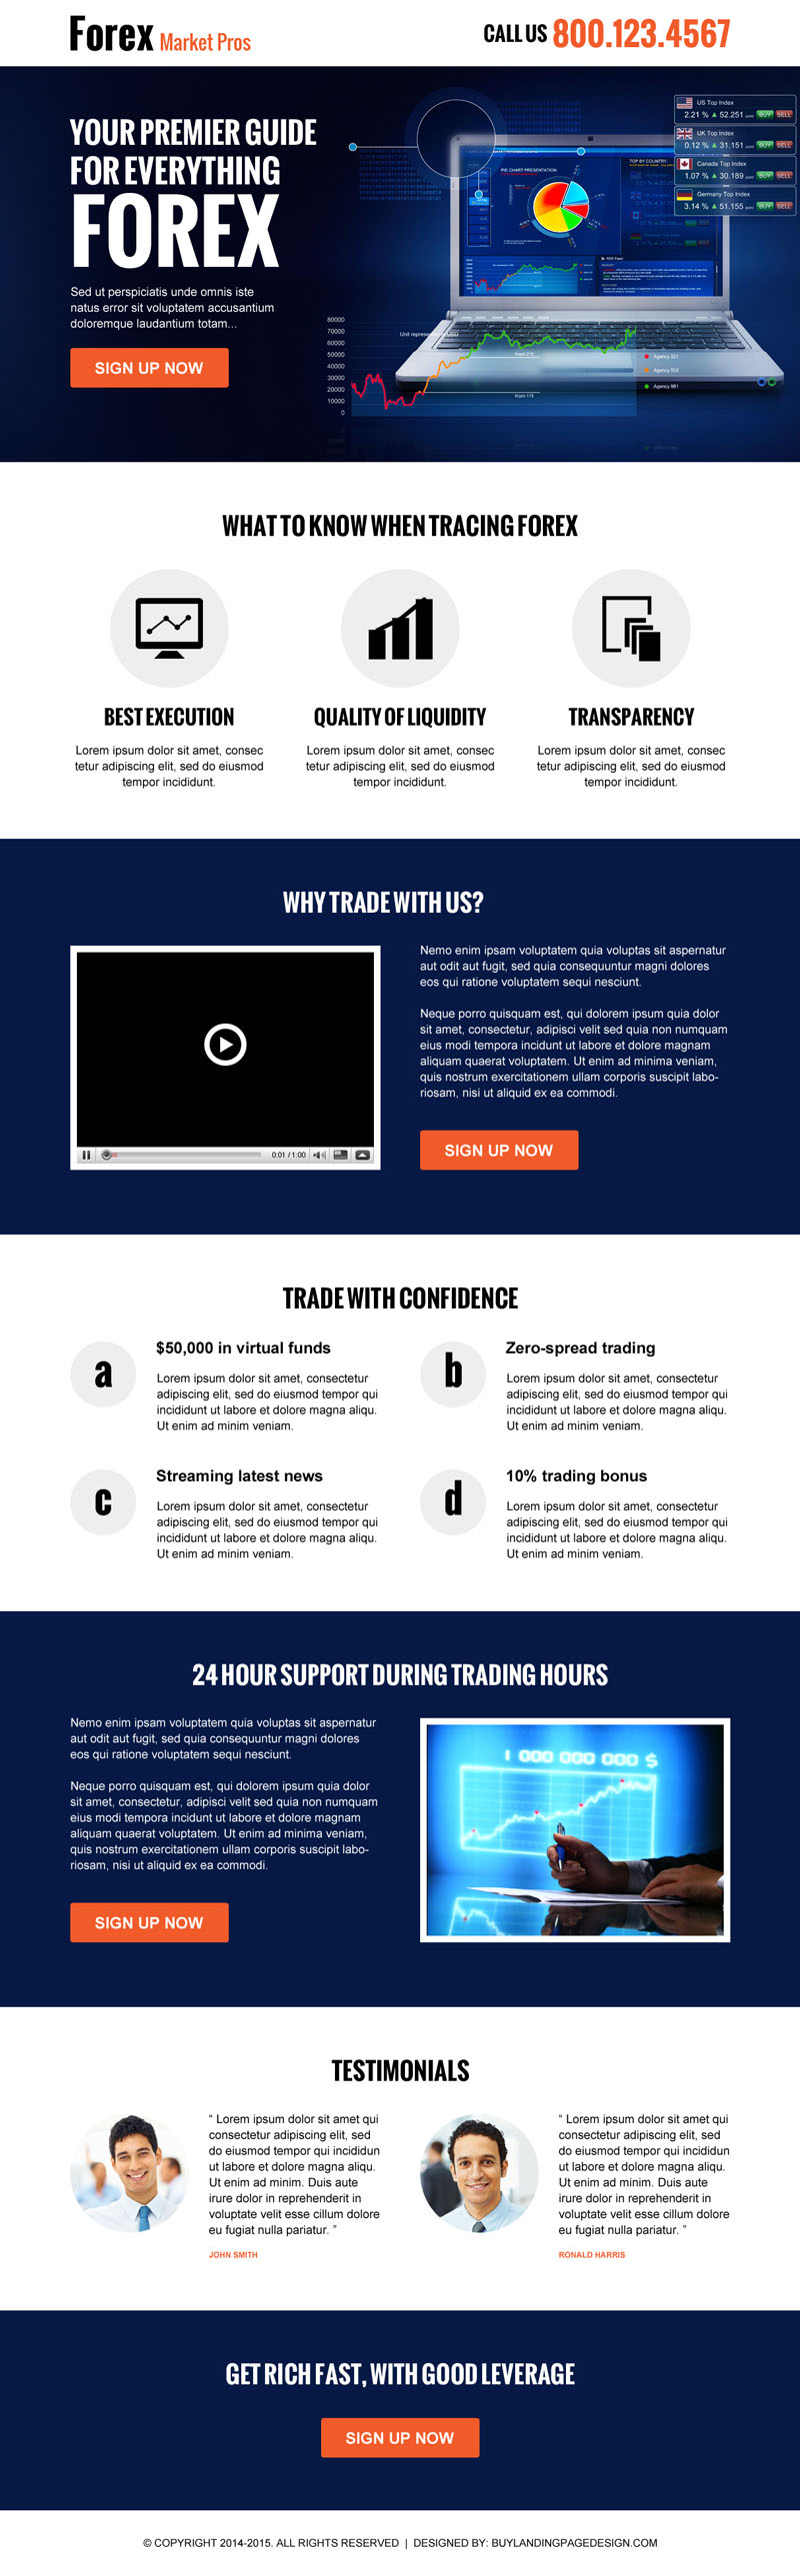 Purchase forex marketing guide landing page design to increase traffic and conversion of your forex business from https://www.buylandingpagedesign.com/buy/forex-marketing-guide-landing-page-design/1387